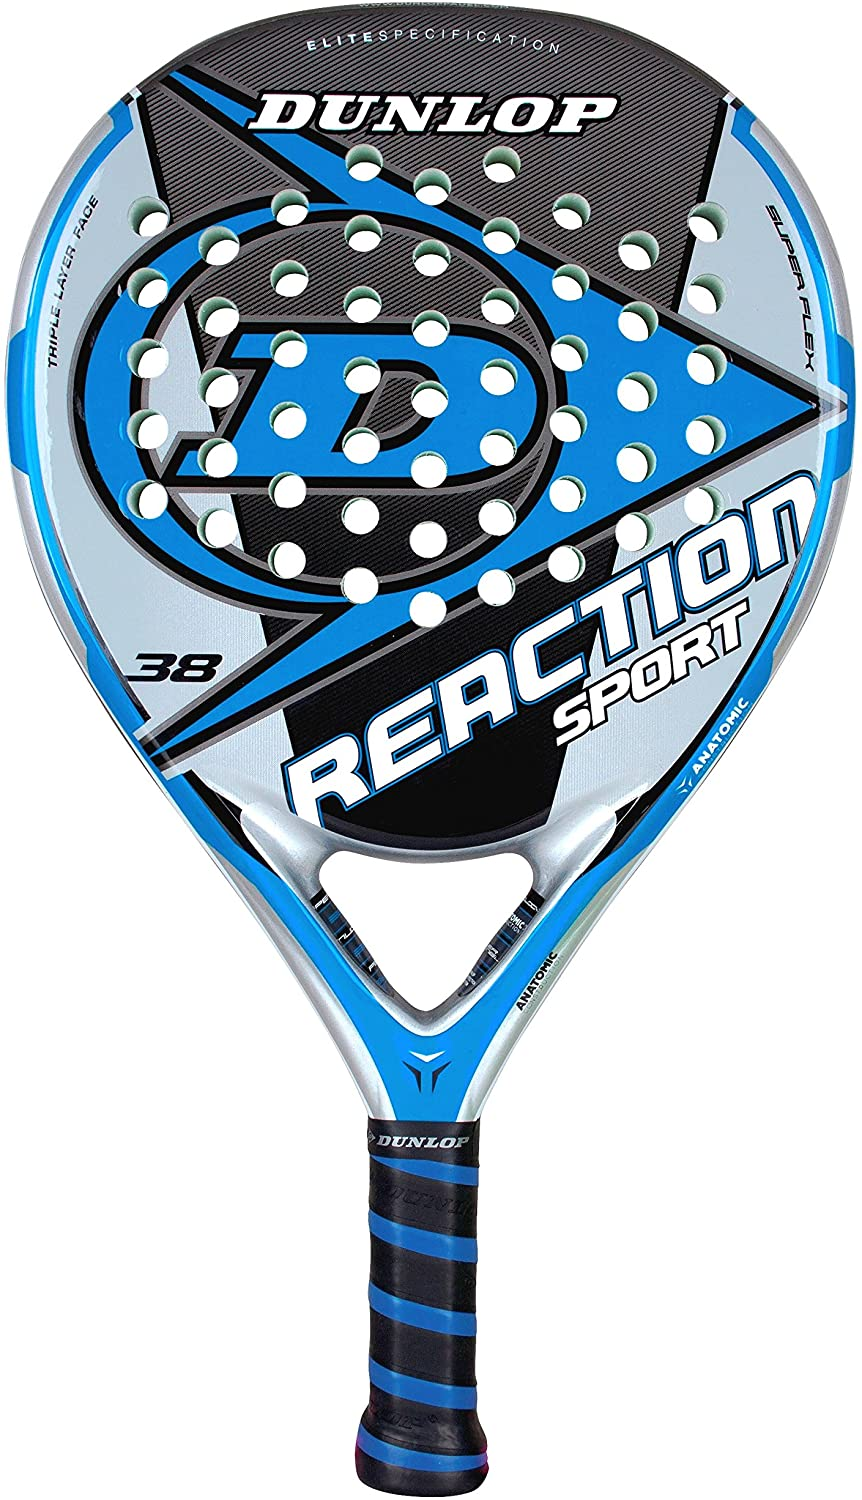 DUNLOP Reaction Sport - Pala de pádel: Amazon.es: Deportes y aire ...